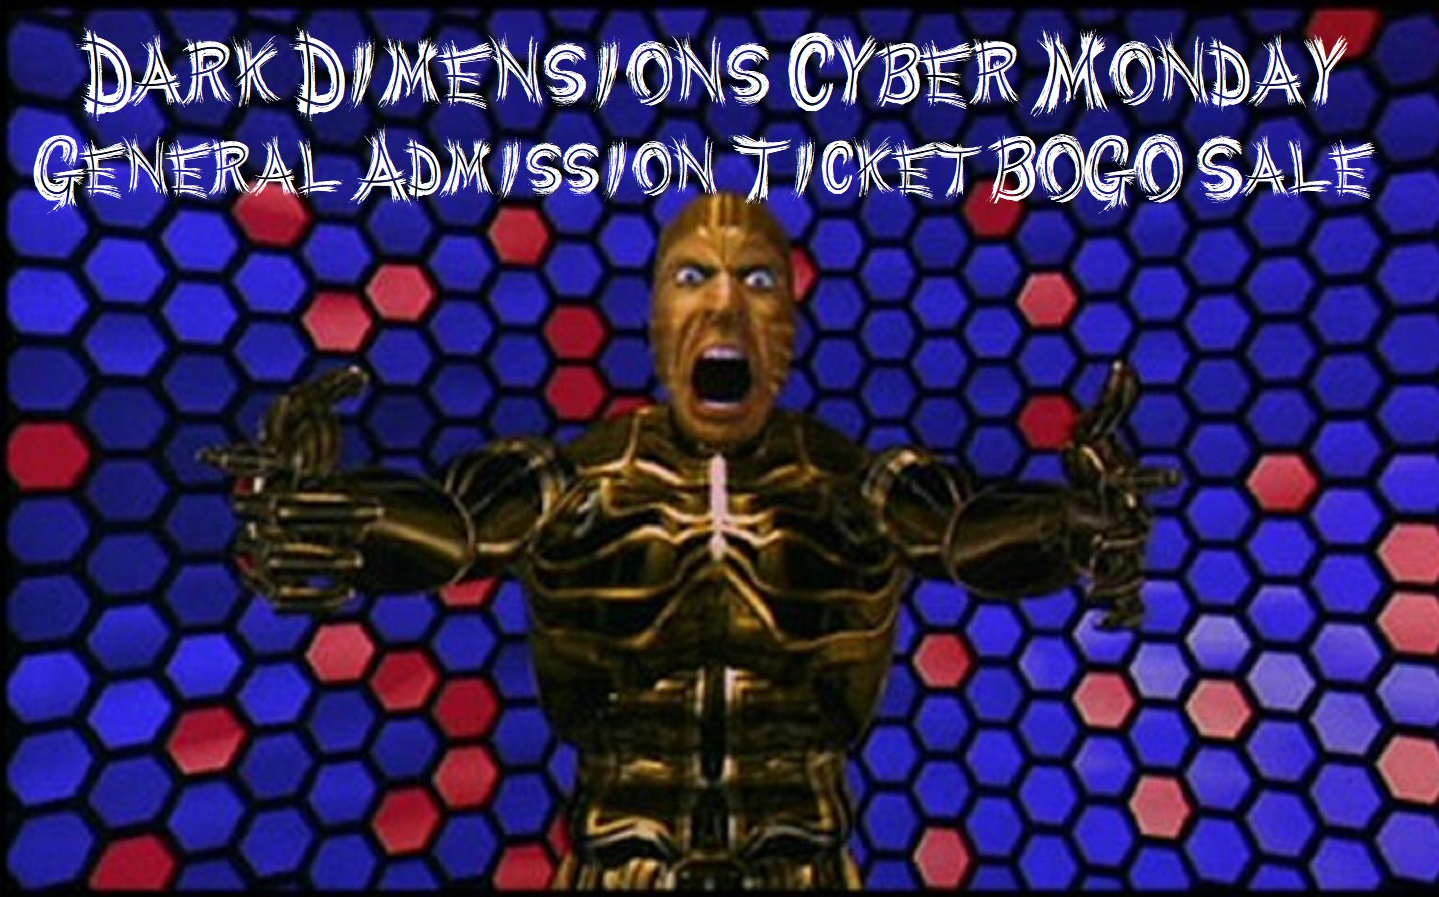 Dark Dimensions Cyber Monday GA Ticket BOGO